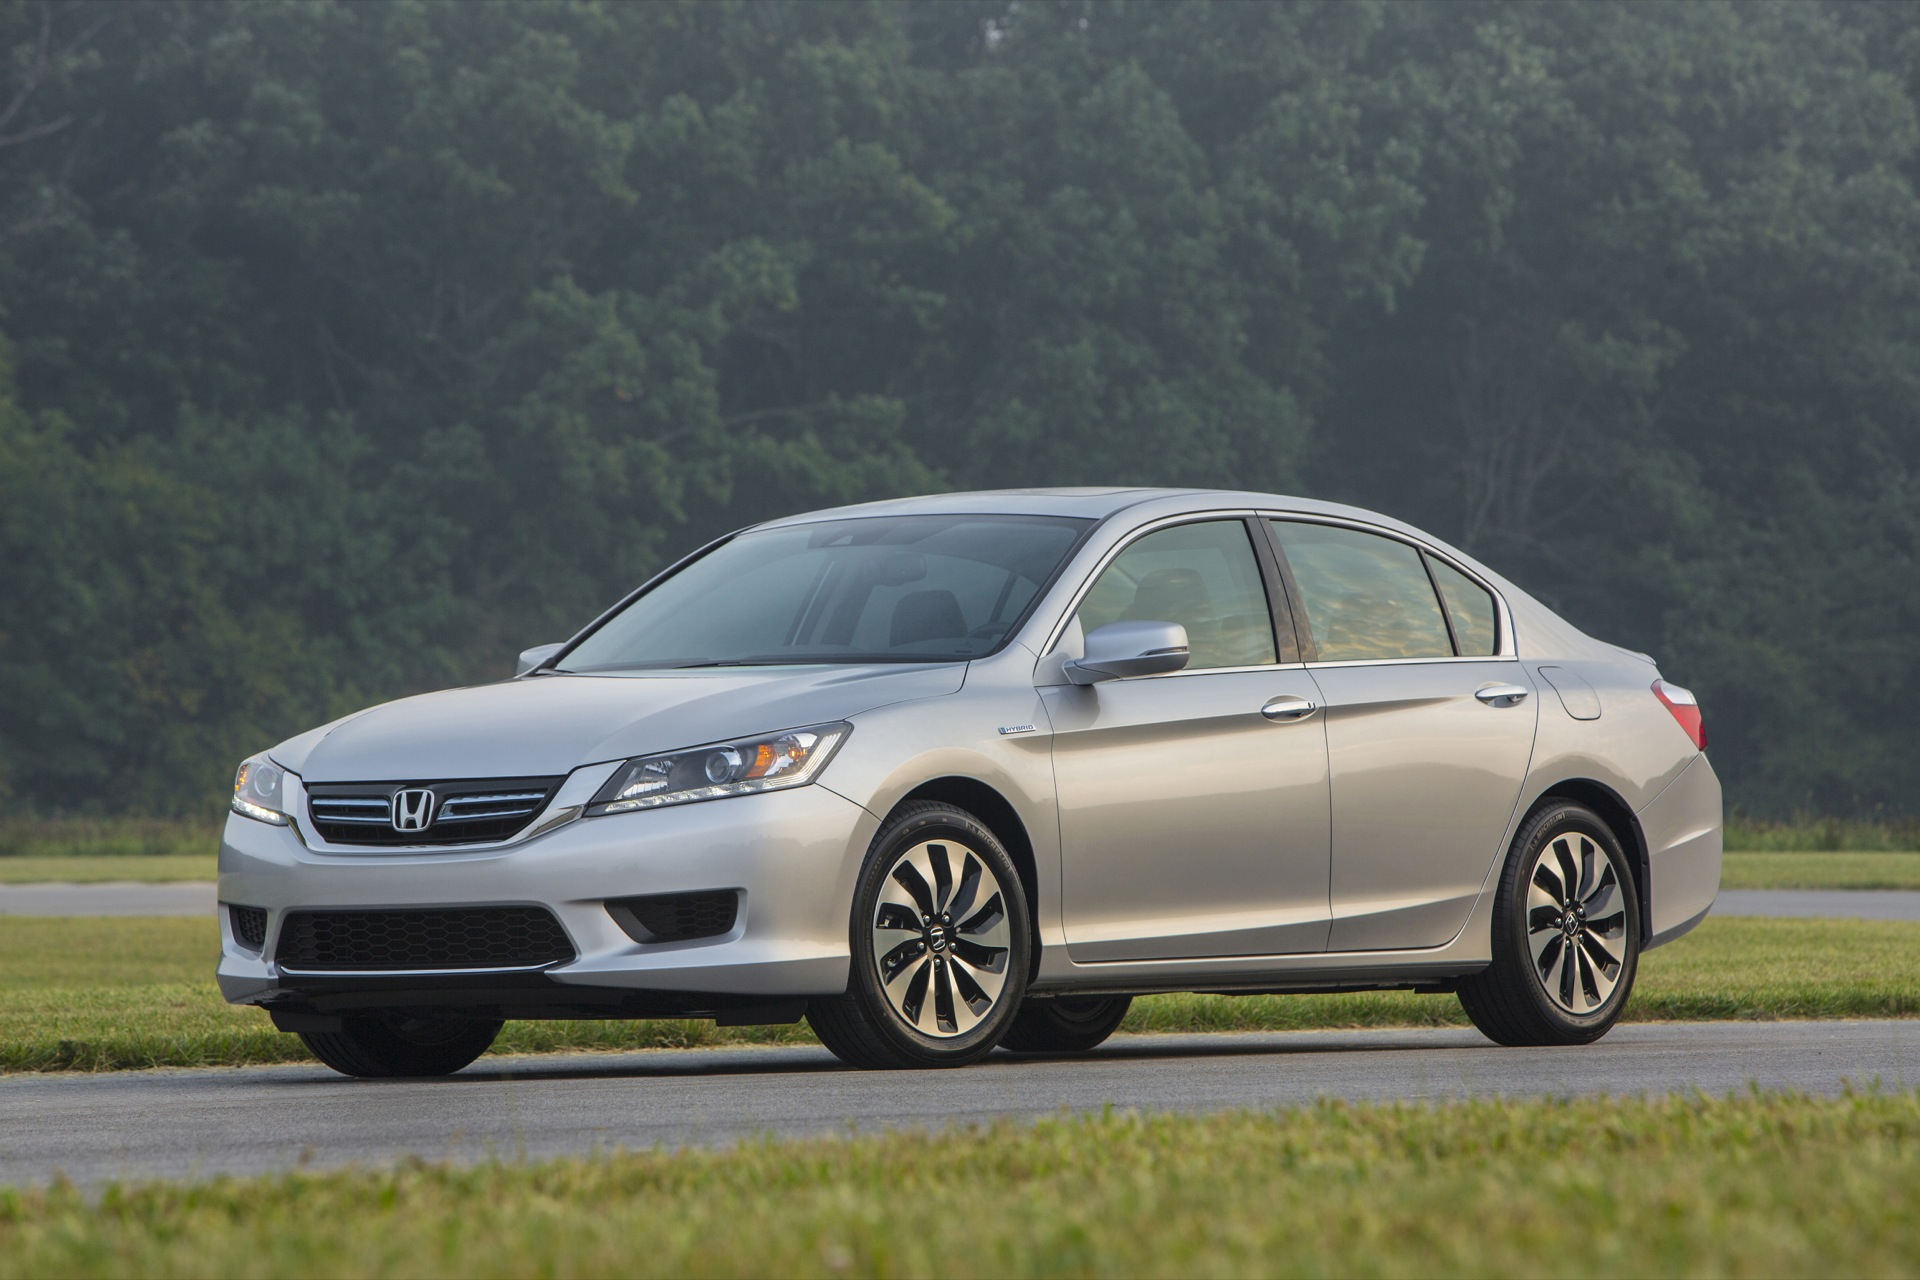 2015 Honda Accord Sedan Review, Ratings, Specs, Prices, and Photos - The Car Connection